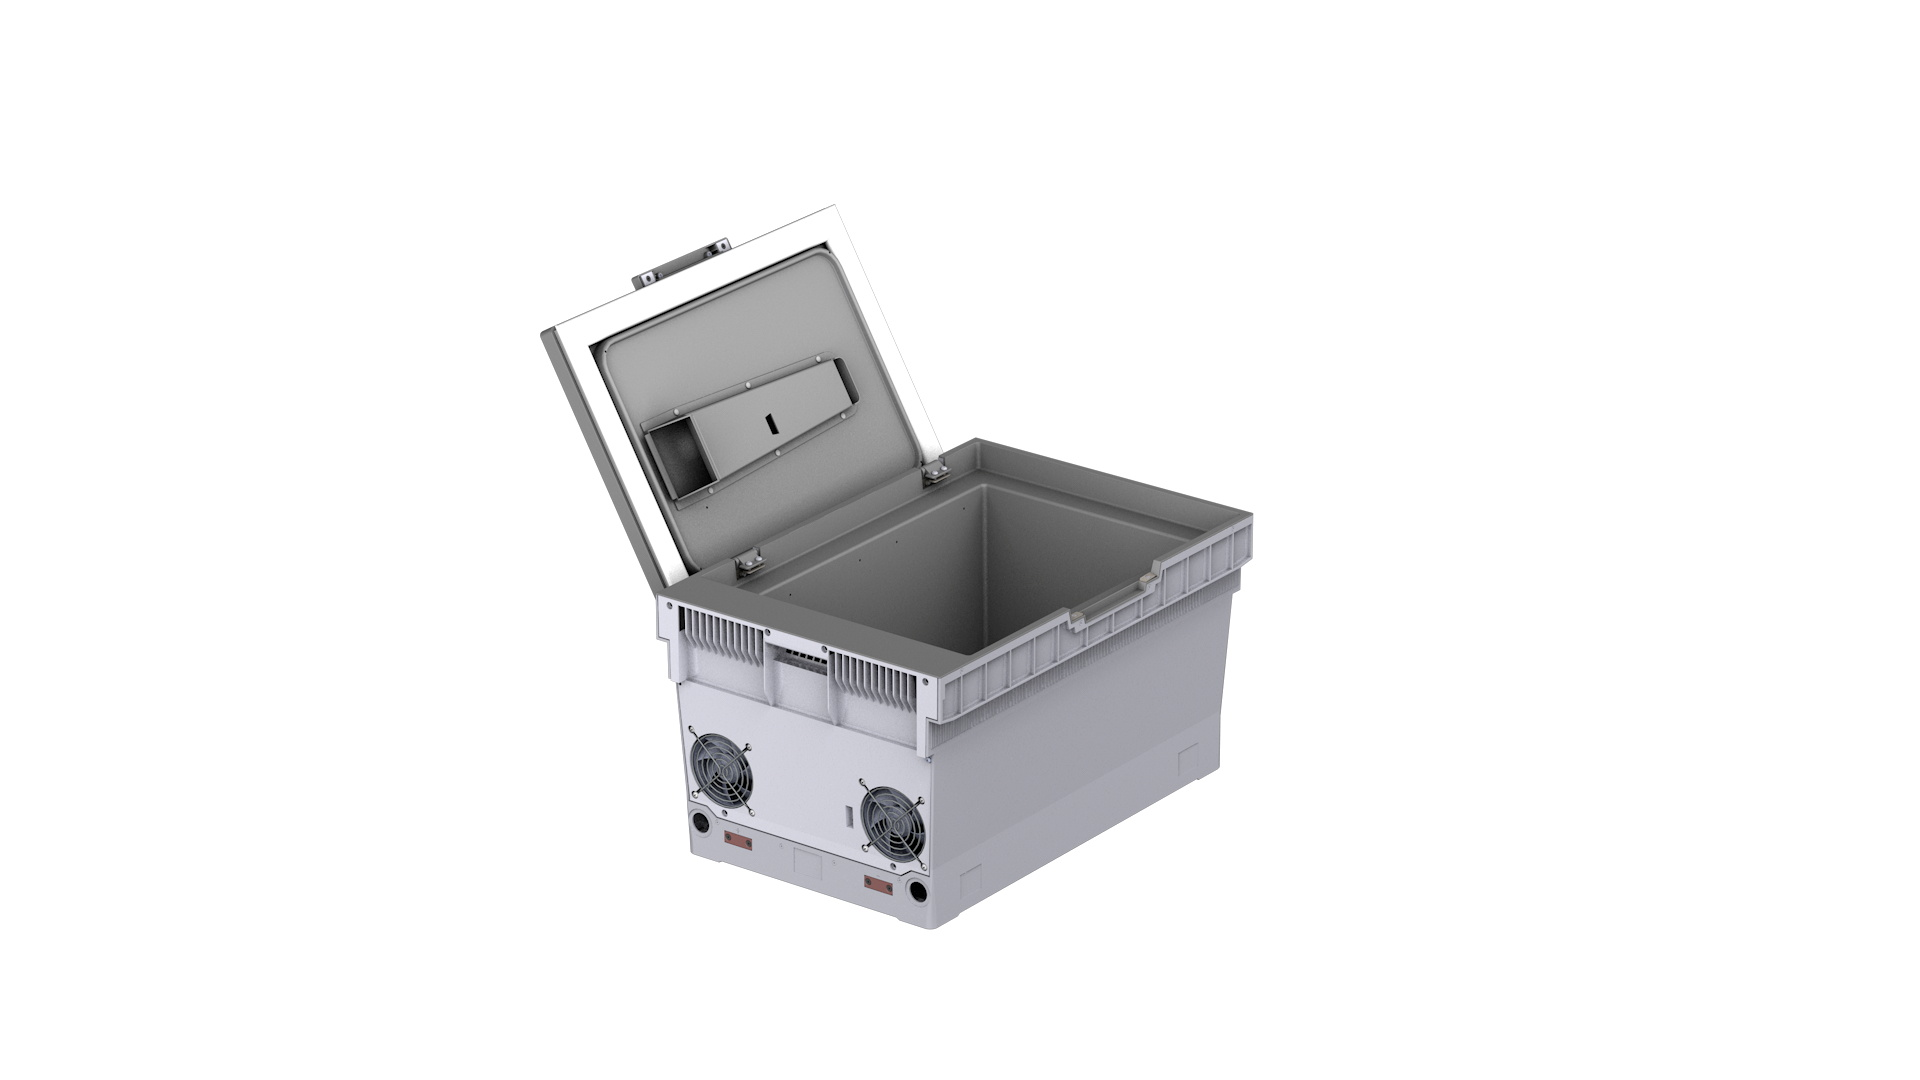 A CAD image of the Phononic Intelligent Actively-Cooled Tote for Micro Fulfillment is seen in this handout image released July 21, 2021. PHONONIC/Handout via REUTERS